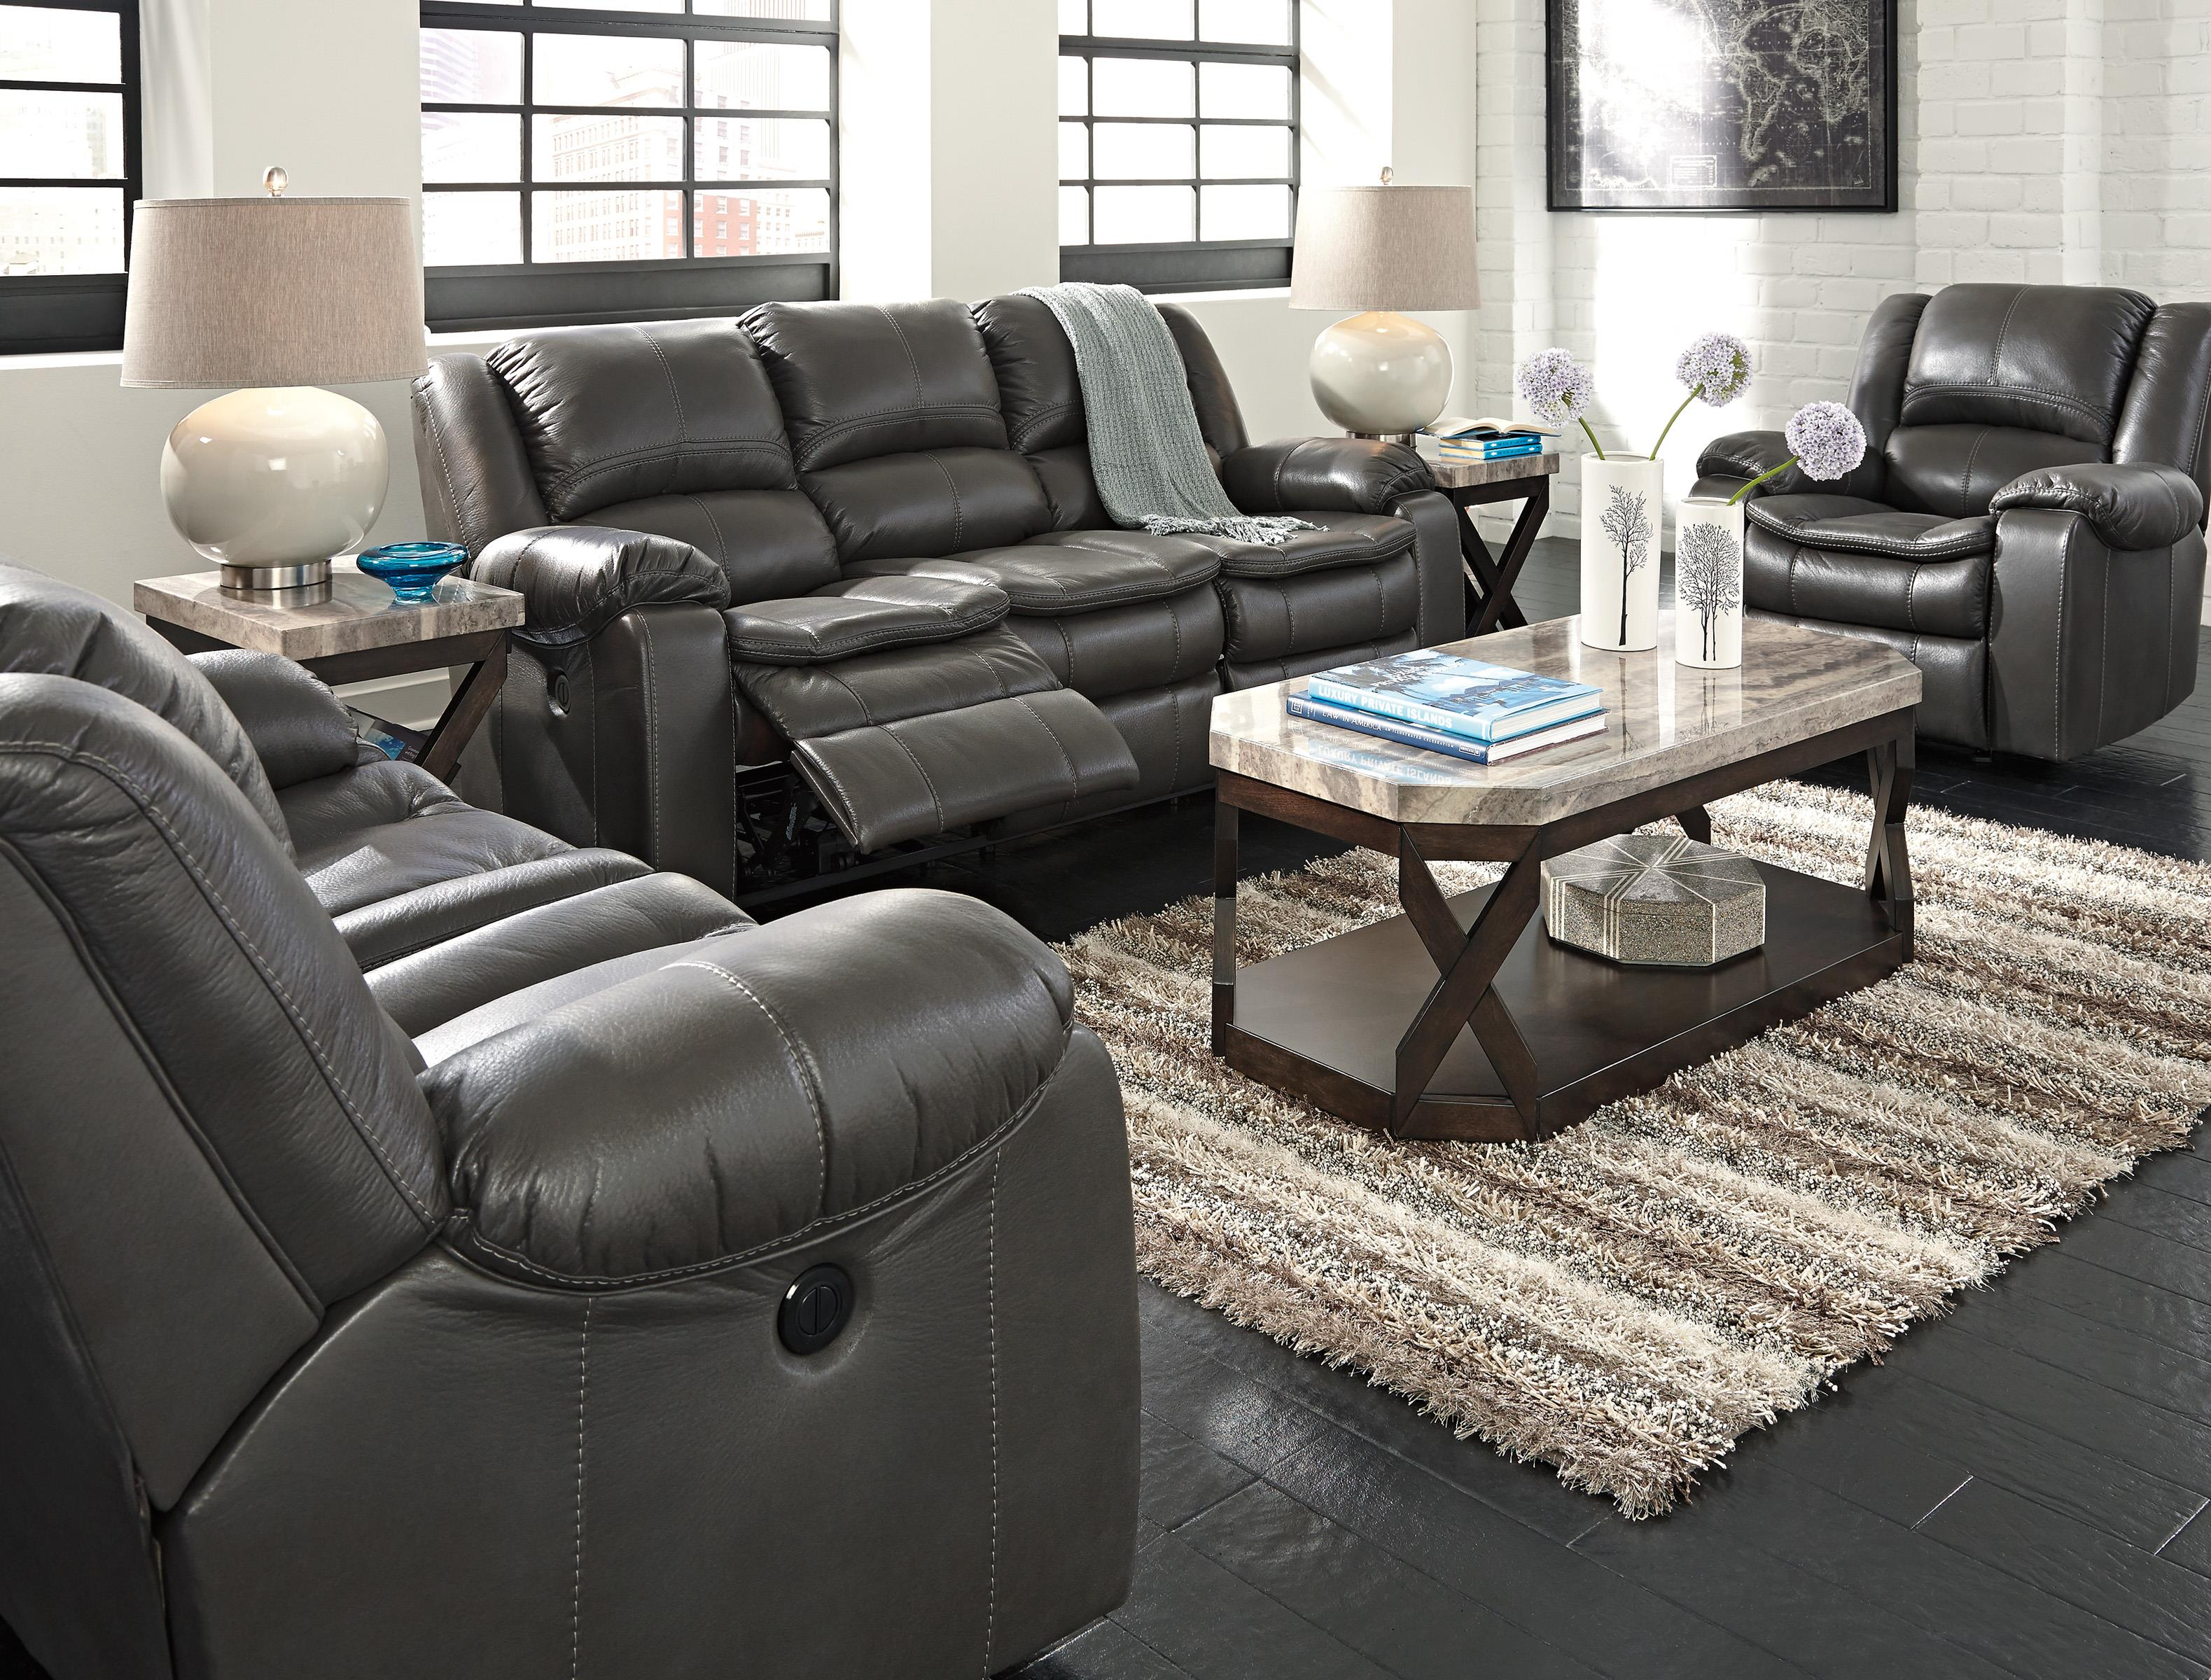 Signature Design by Ashley Long Knight Reclining Living Room Group - Item Number: 88906 Living Room Group 4